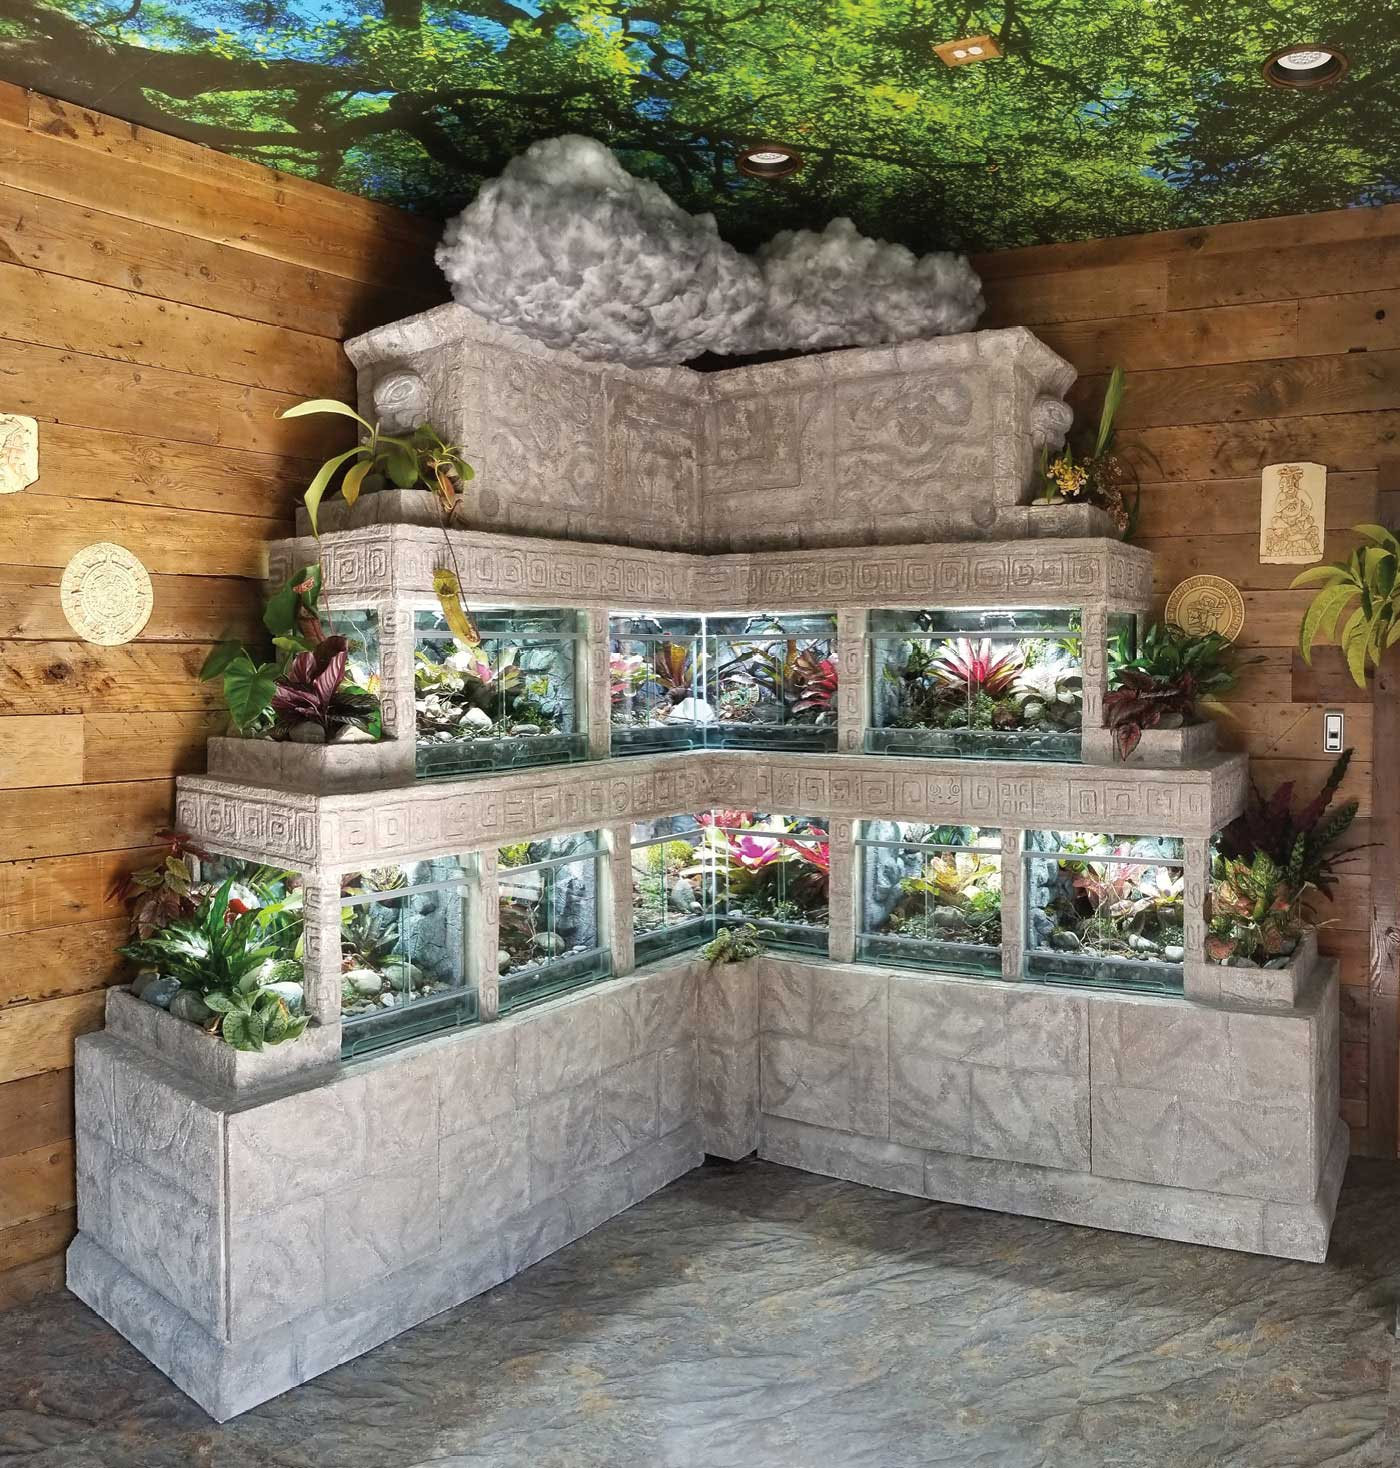 This Calgary Terrarium Company Builds Stunning Large